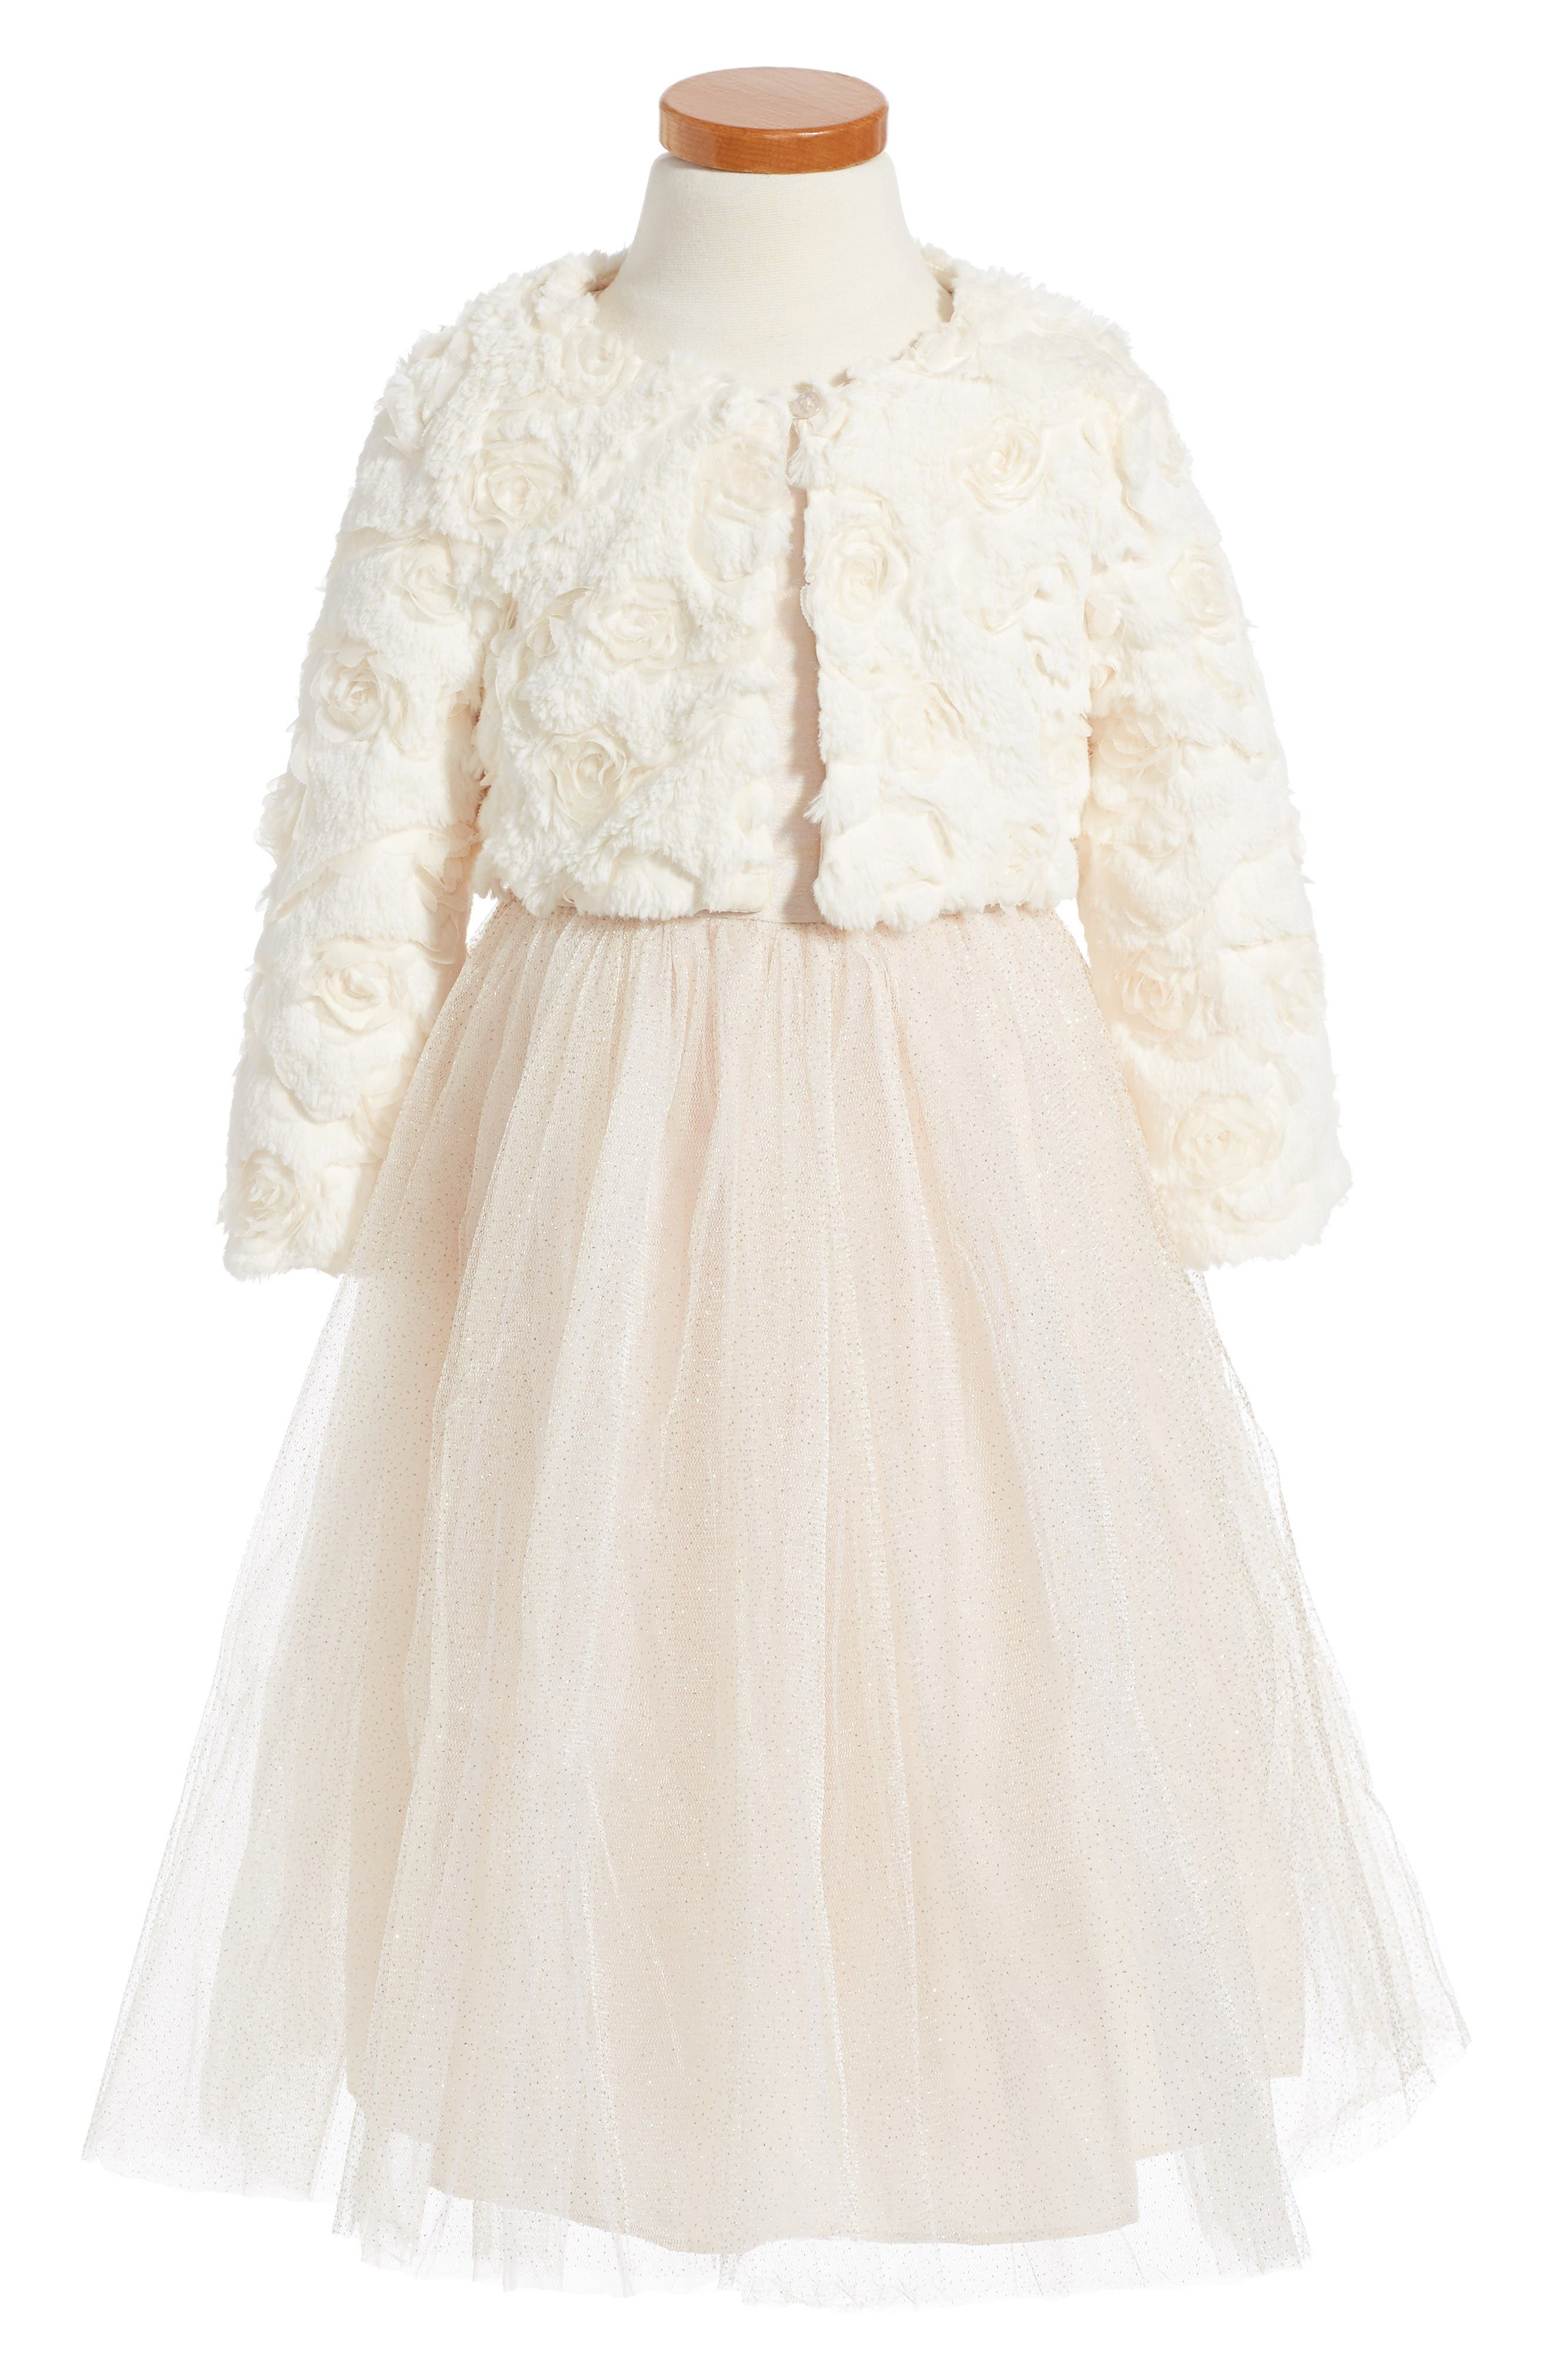 Alternate Image 1 Selected - Pippa & Julie Tulle Dress & Rosette Faux Fur Jacket (Toddler Girls, Little Girls & Big Girls)